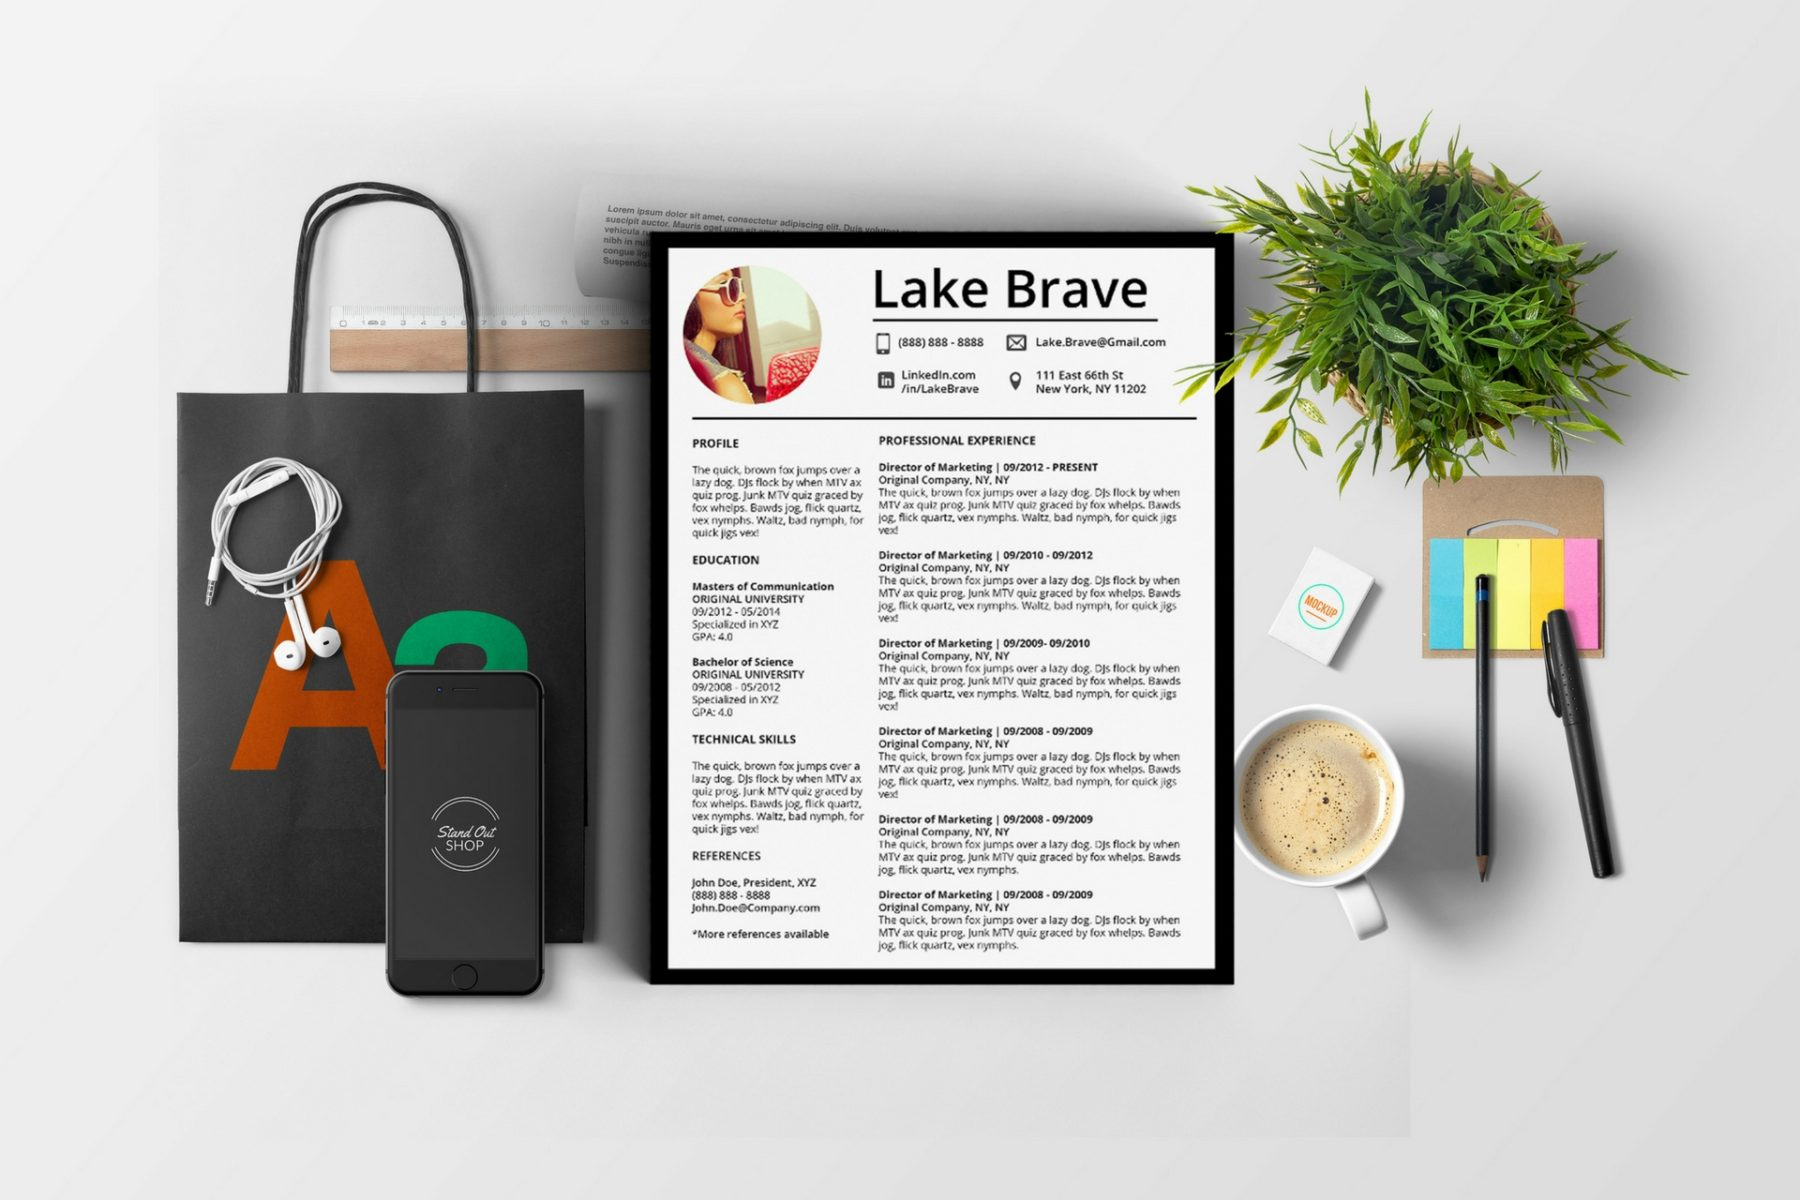 Lake Brave Downloadable Resume + Cover Template and Cover Letter Template for Microsoft Word and Apple Pages. This cover letter template is perfect for anyone in the fashion field. The template's design is a modern, unique, colorful, and professional. WE SWEAT THE DETAILS, SO YOU DON'T HAVE TO Stand Out Shop resume templates for Microsoft Word and Apple Pages will help you design a modern and professional resume in minutes! Simply download, open in Microsoft Word or Apple Pages, and input your resume's information. Increase your chances of landing your dream job with a job winning, modern, simple, and scannable resume template for Microsoft Word and Apple Pages. Creating a resume shouldn't suck Simply download a resume template from Stand Out Shop, enter your information in Microsoft Word or Apple Pages and get a beautifully formatted resume in seconds. Create a unique and vivid resume in minutes. Make an impressive resume. Customize your own layout in Microsoft Word or Apple Pages and introduce yourself in an impressive way. You can download your resume at any time. Stand out from other job seekers with a beautiful professional design.